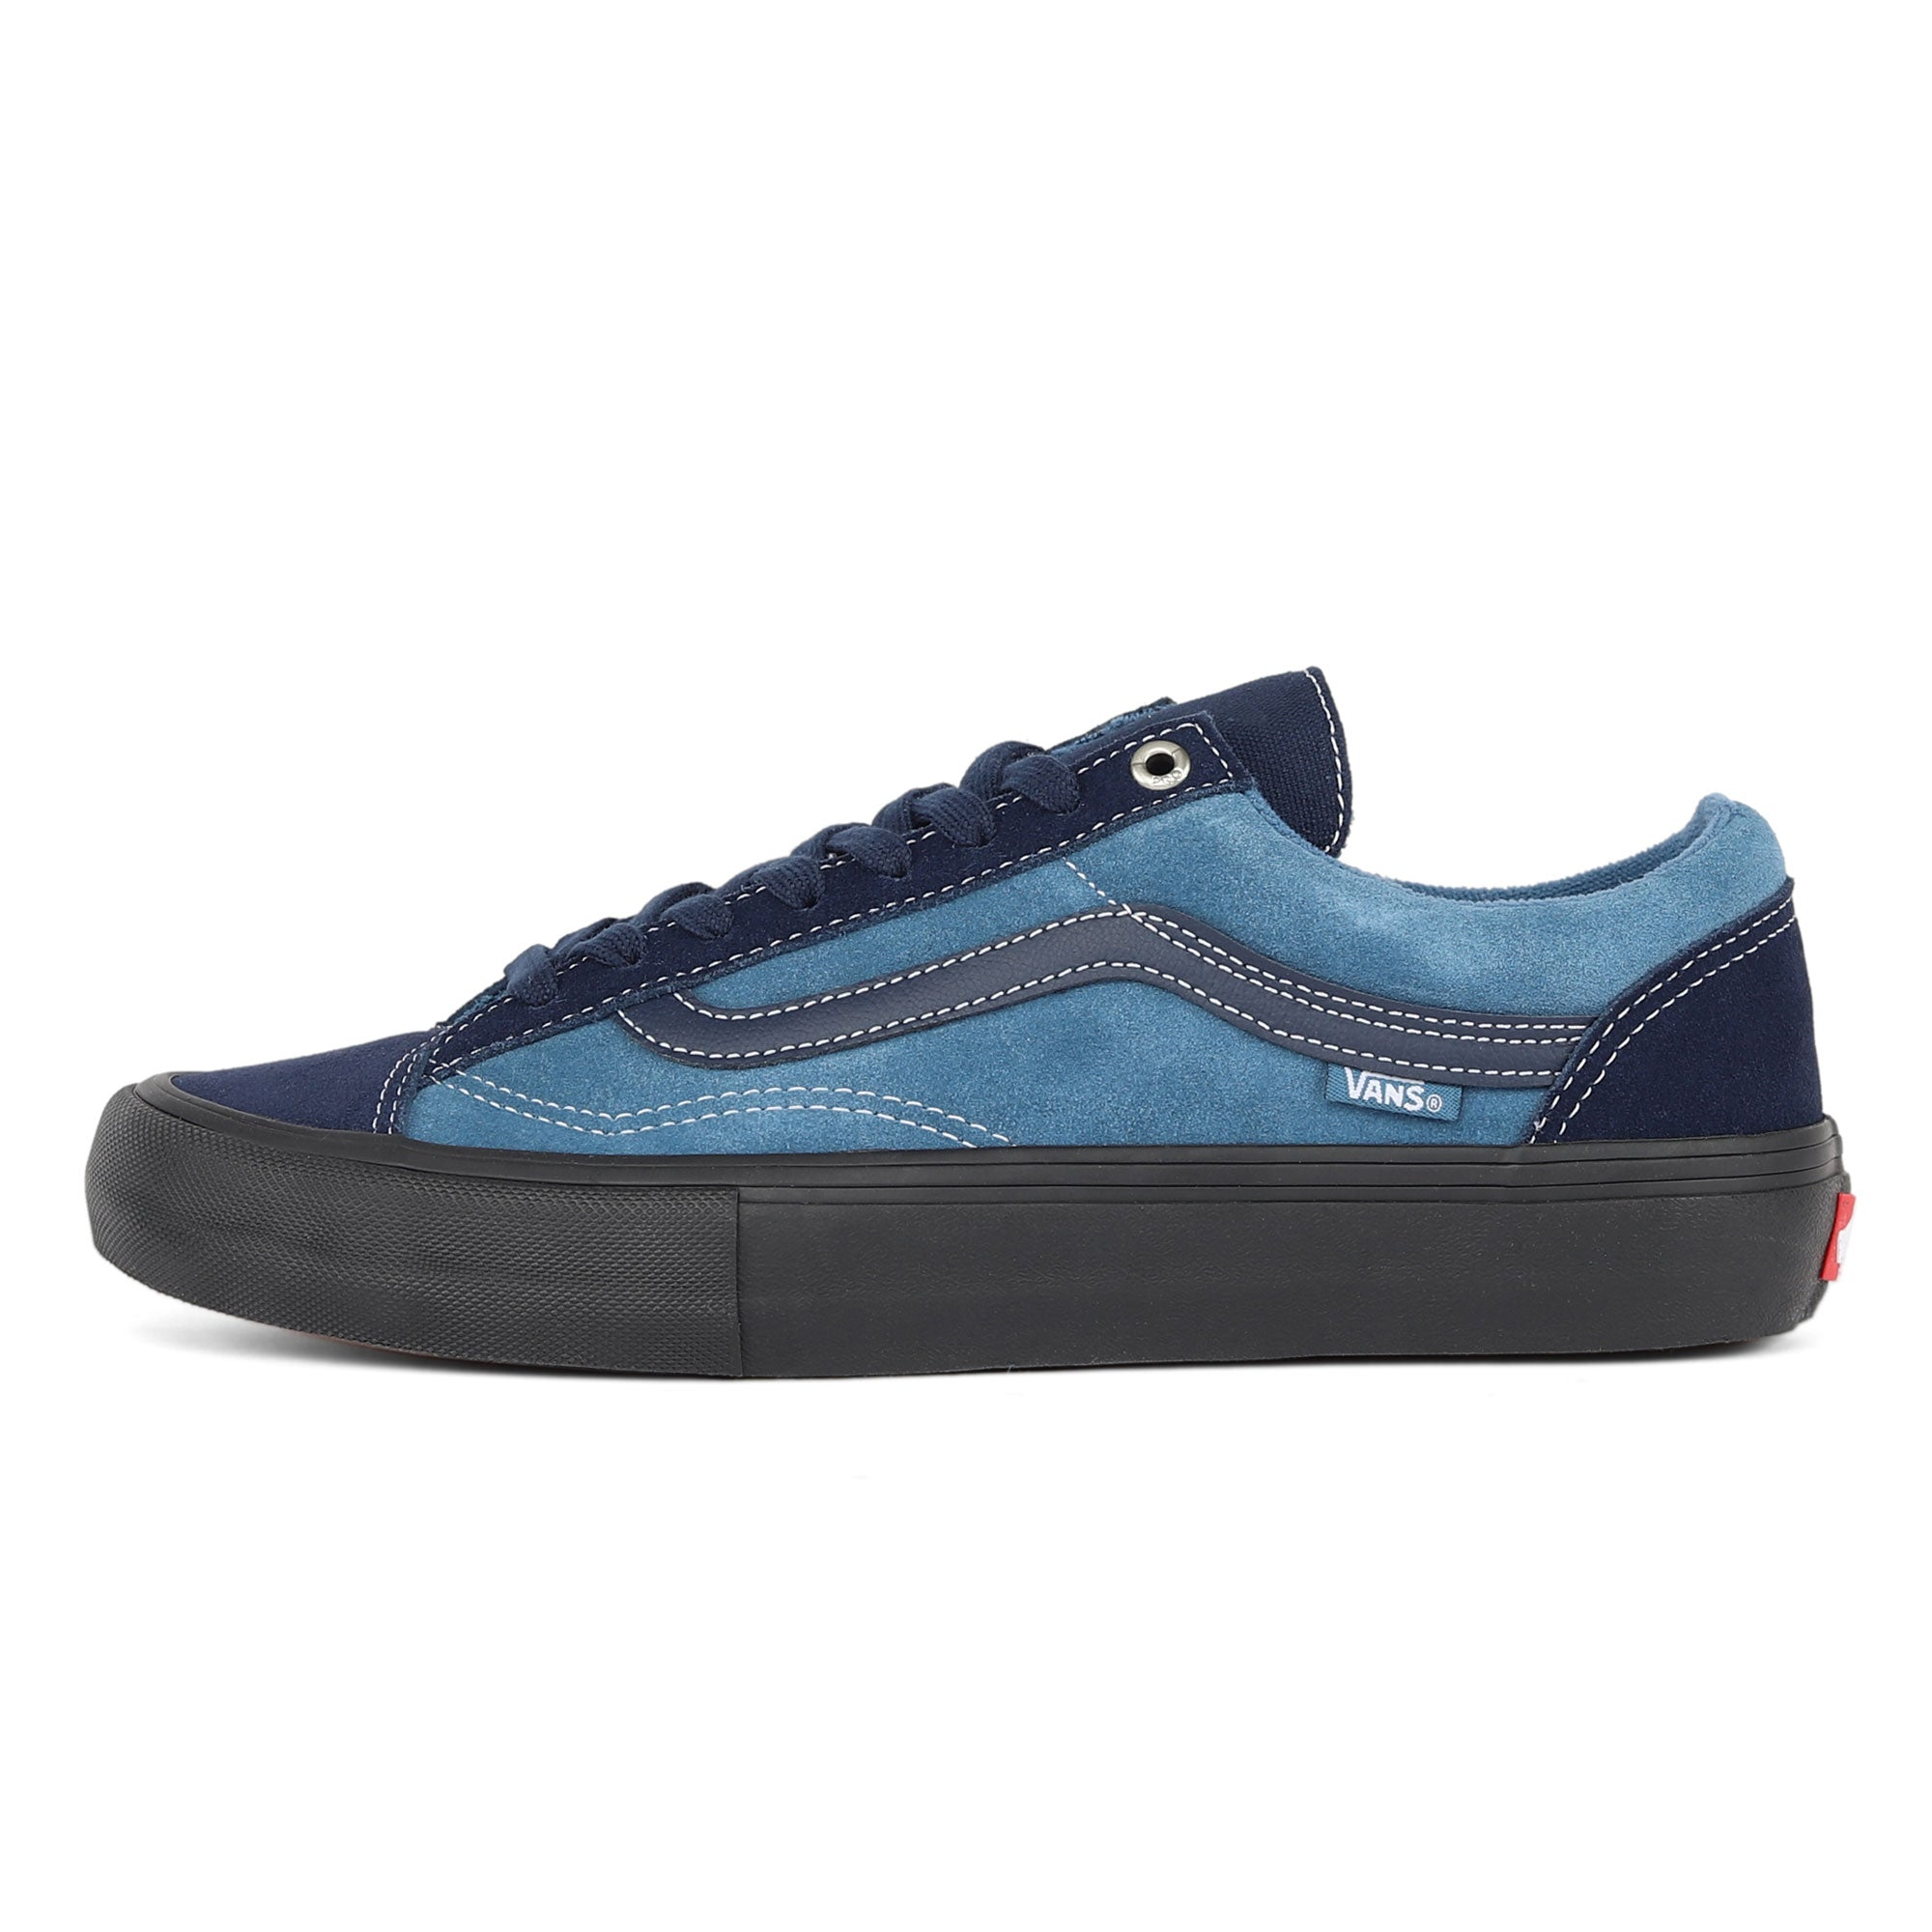 Vans Style 36 Pro Product Photo #1